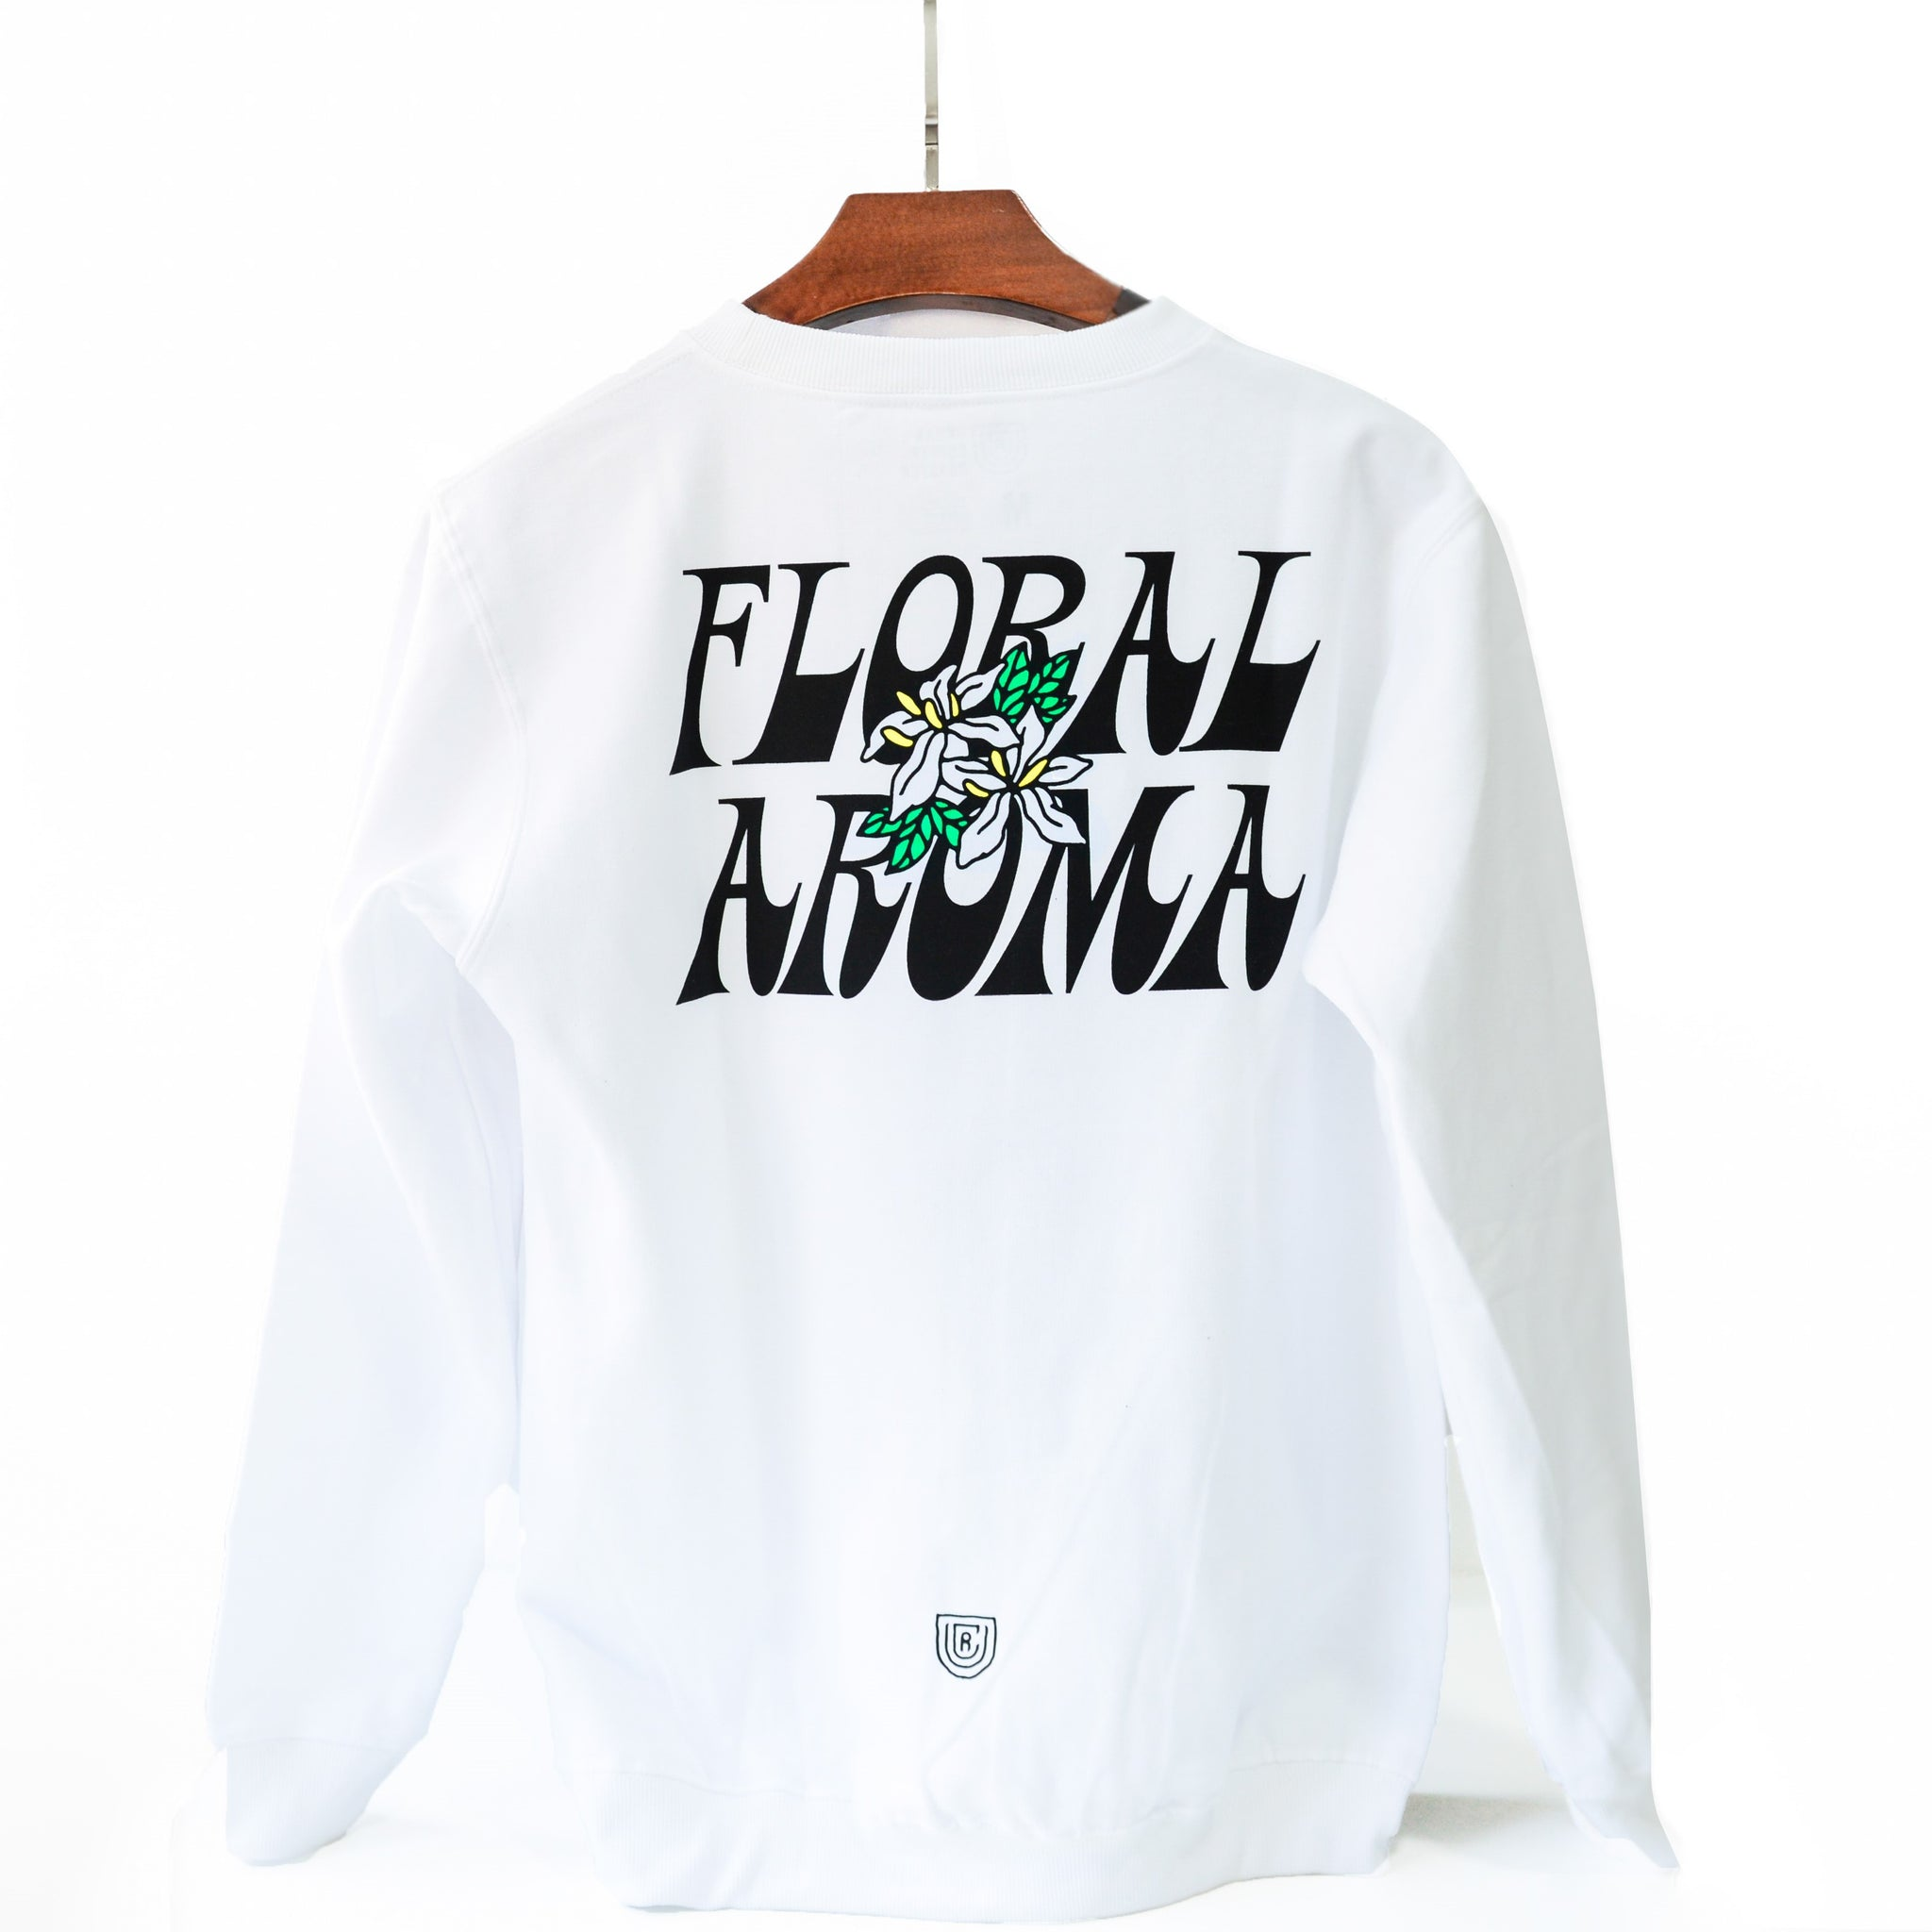 UCR FLORAL AROMA SWEAT SHIRT (White) - Urban Coffee Roaster